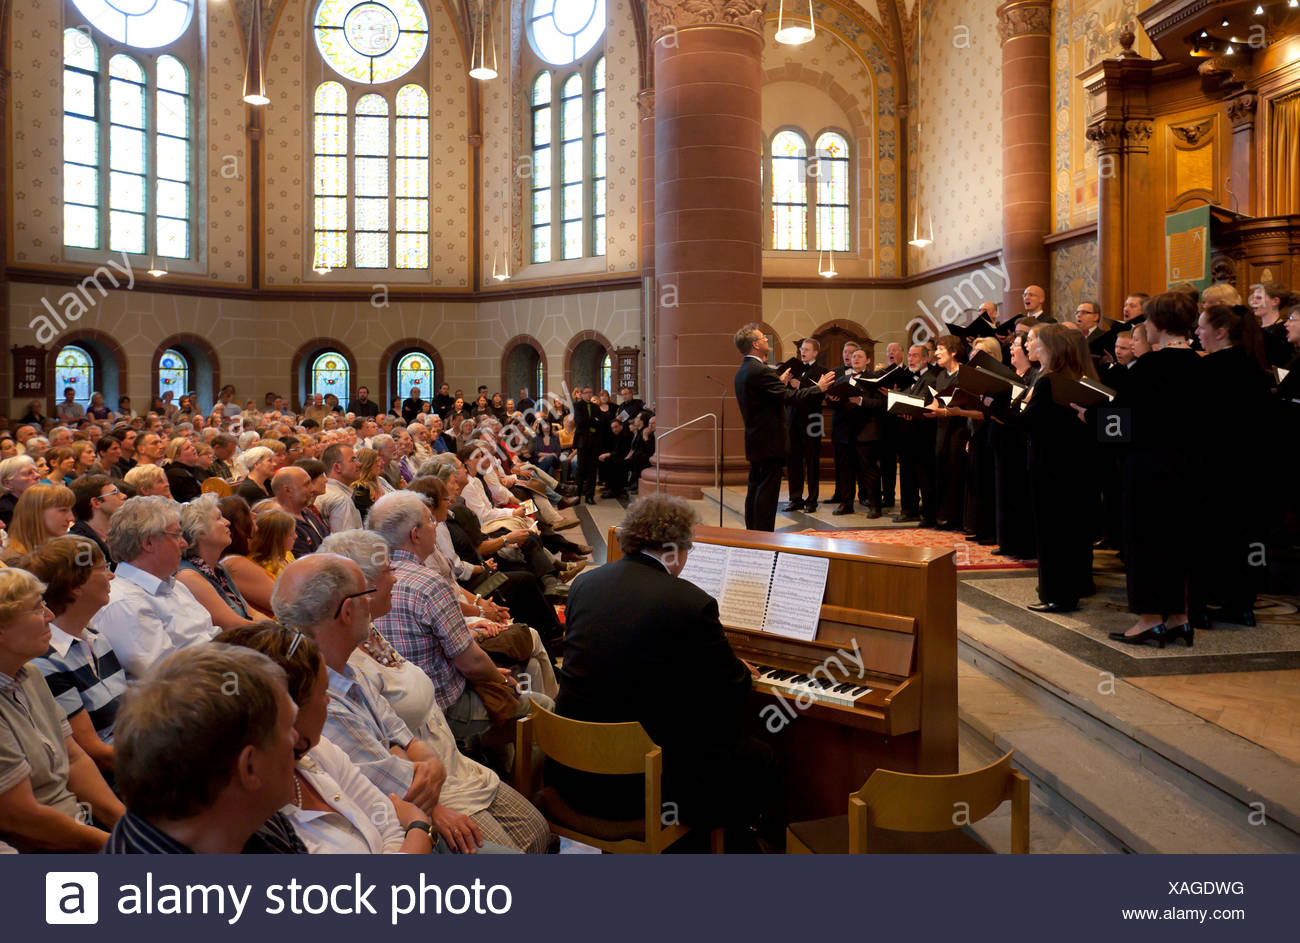 Essen, Germany, changing the concerts Hochschulchoere - Stock Image